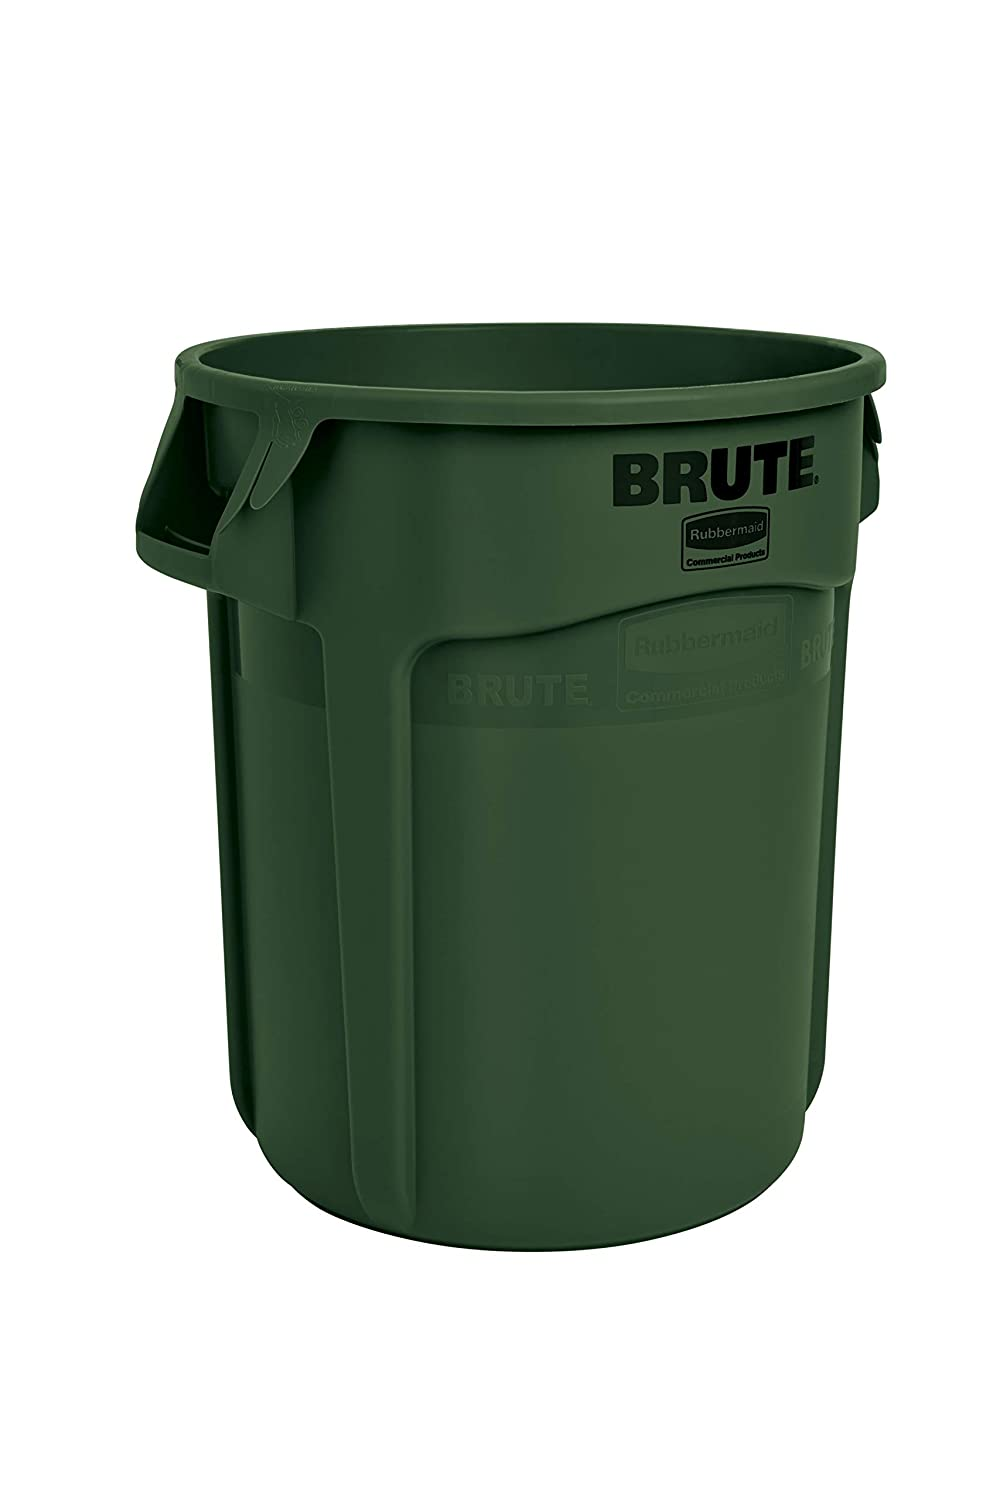 Rubbermaid Commercial Products FG261000DGRN BRUTE Heavy-Duty Round Trash/Garbage Can, 10-Gallon, Green